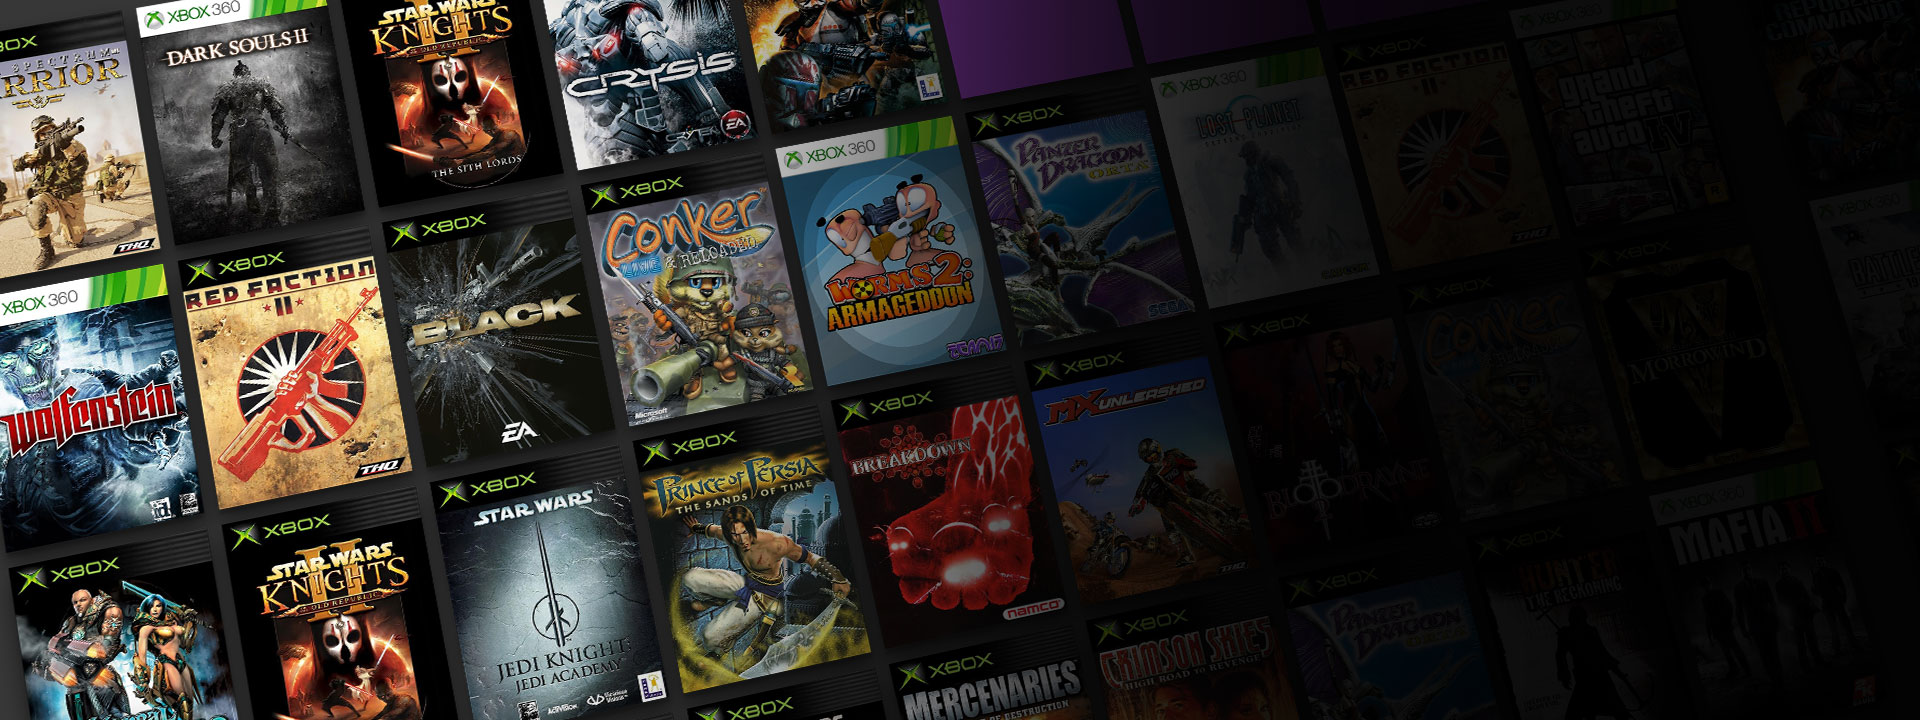 An collection of Xbox and Xbox 360 box shot